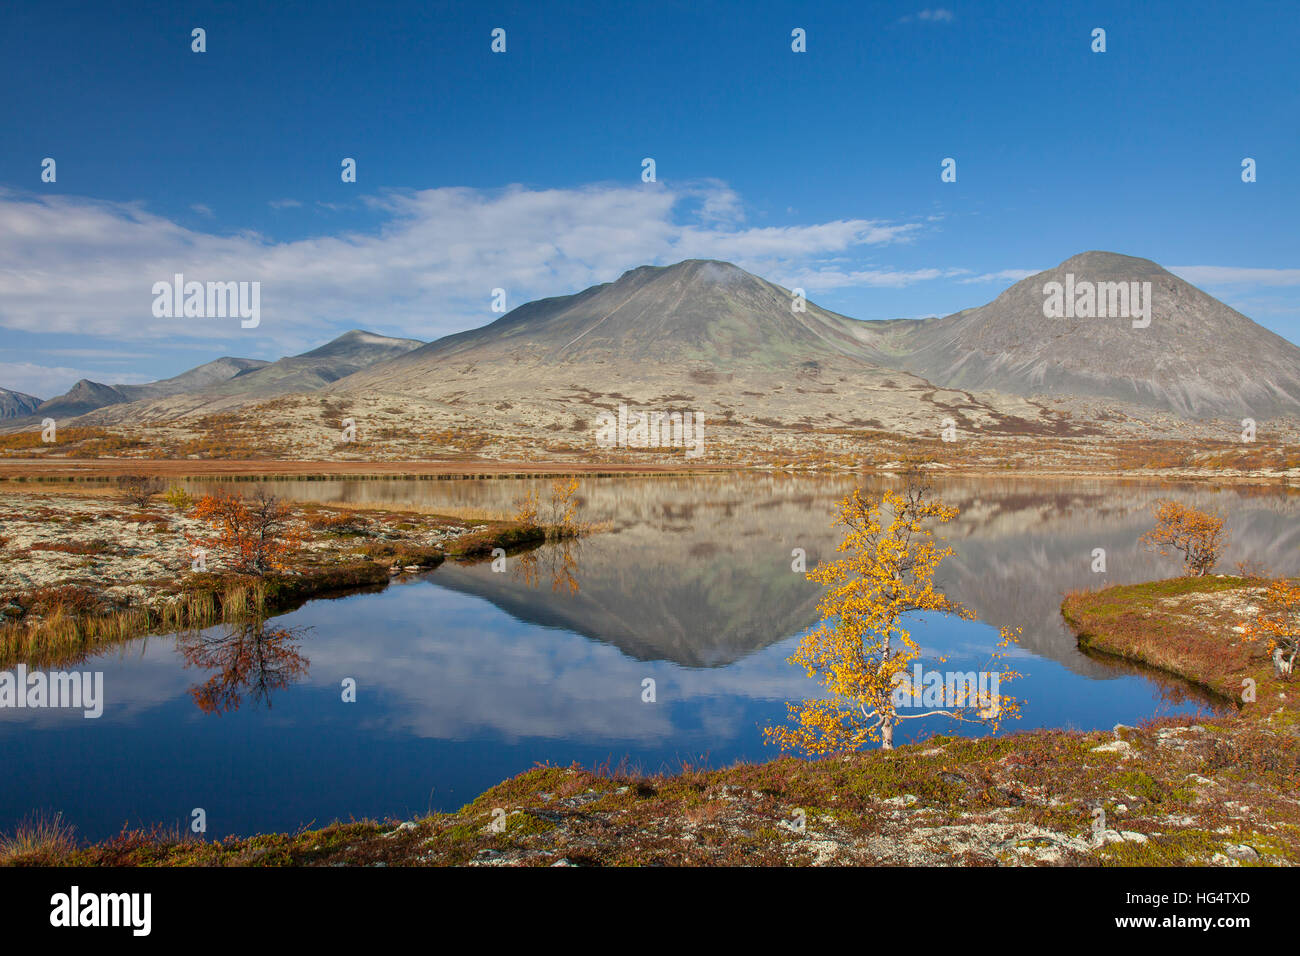 Lake in front of the mountain Stygghoin in autumn, Døråldalen in Rondane National Park, Oppland, Norway - Stock Image